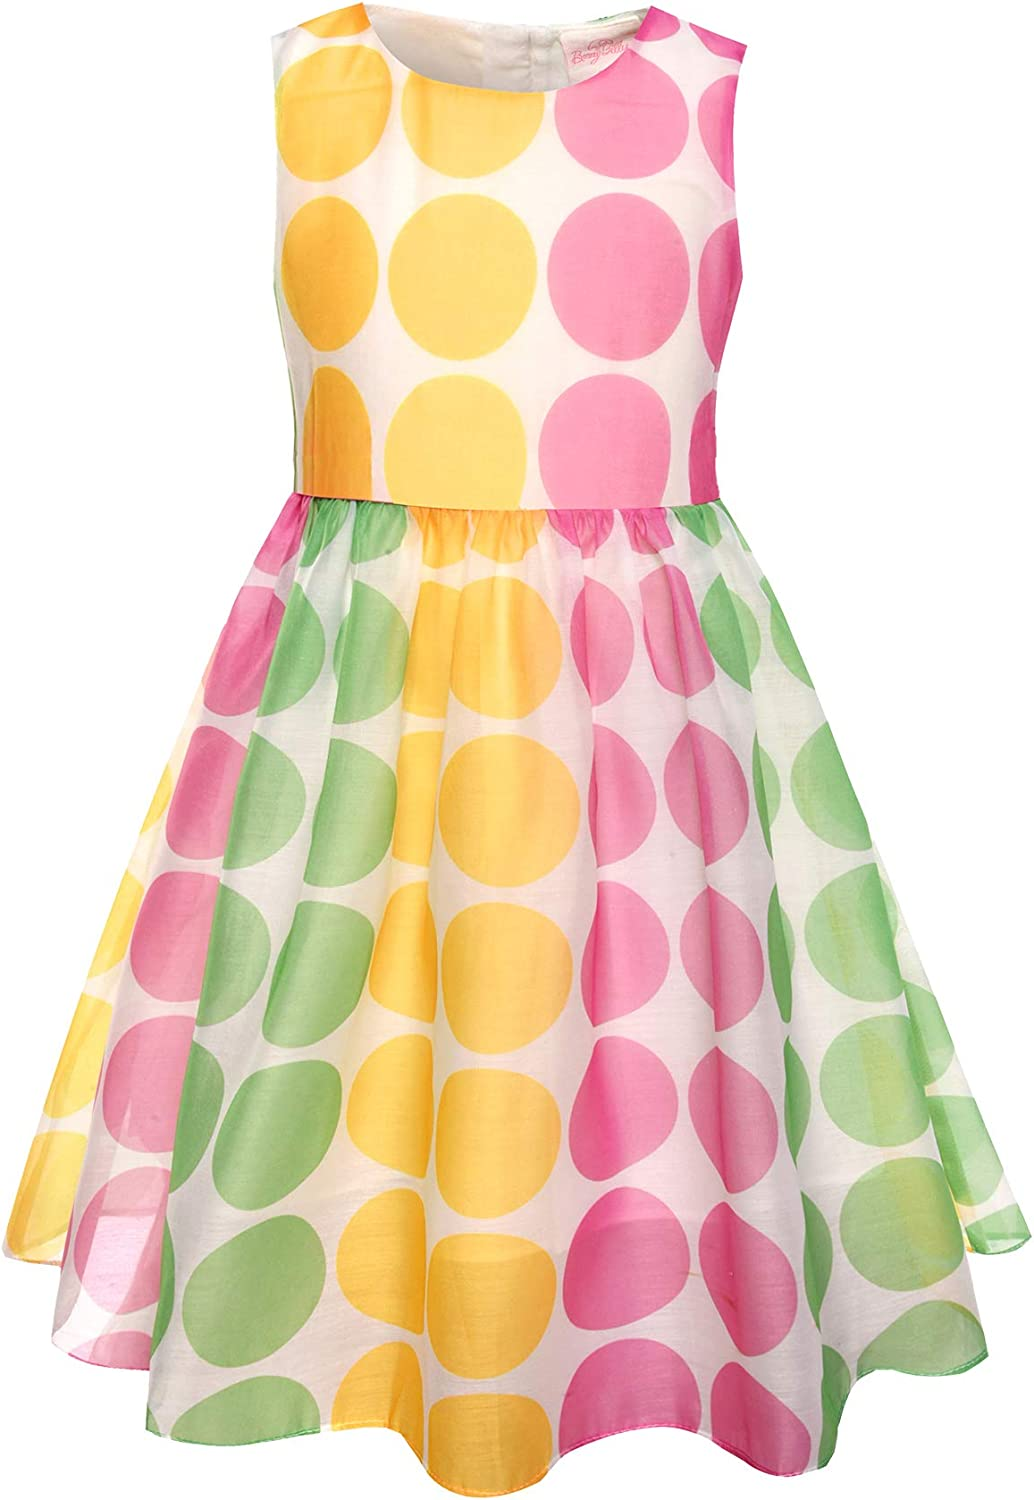 SPEINY Girls Sleeveless Candy Dots Printed Summer Dresses Kids Clothes